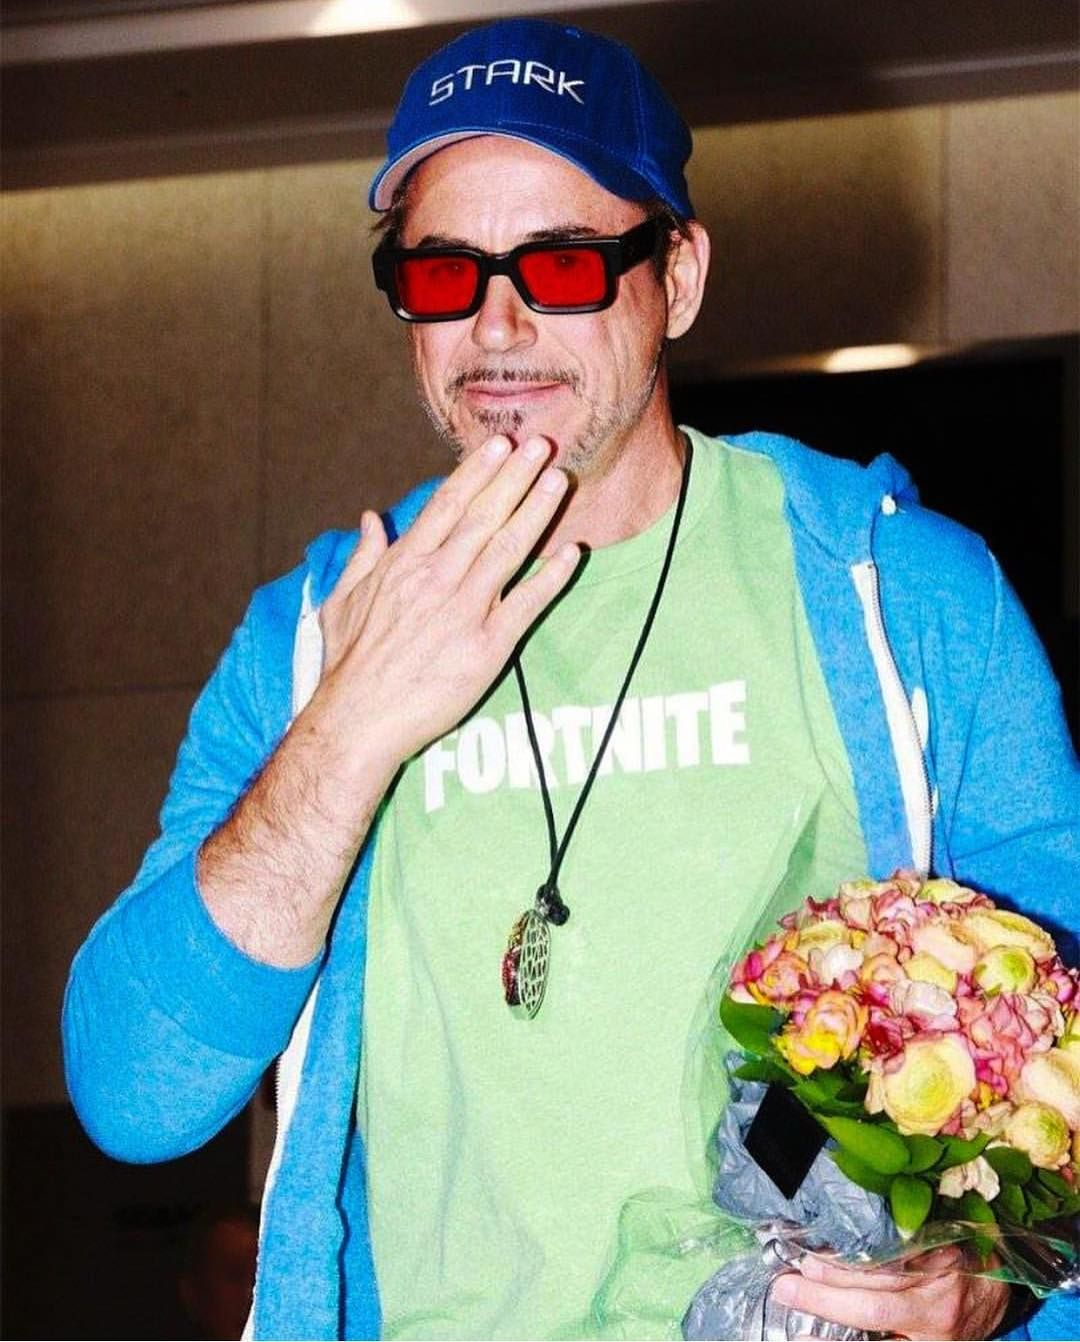 New Robert In Seoul Cant Believe Hes Wearing A Fortnite Shirt Creds Robertdorkneyjr New Robert In Seoul Fortnite Robert Downey Jr Funny Robert Downey Jr